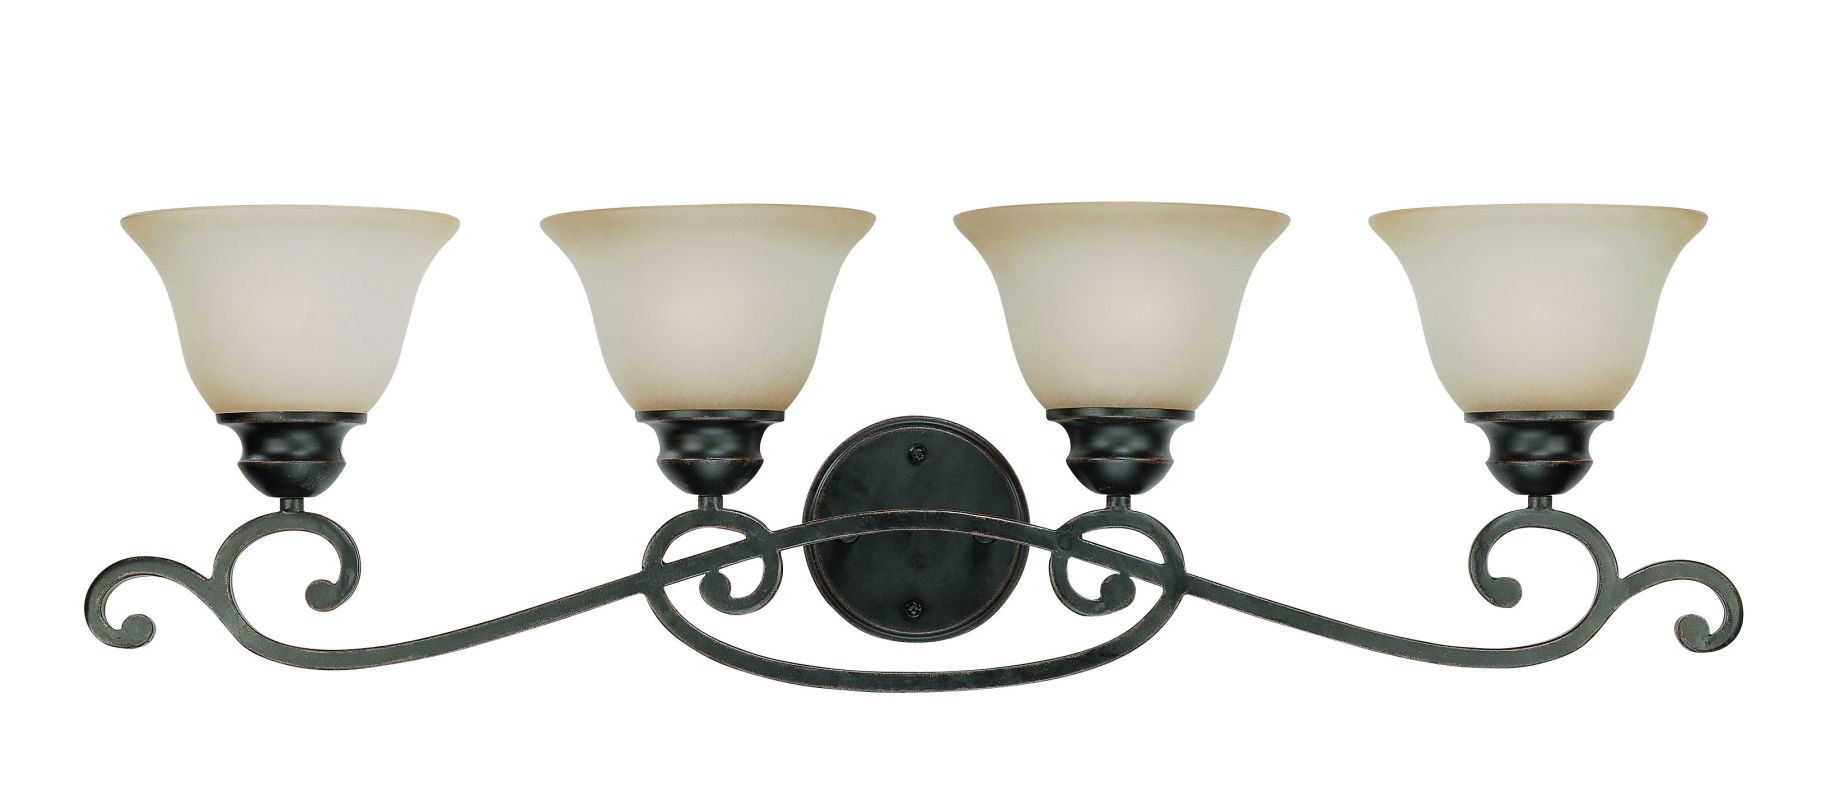 Jeremiah Lighting 23004 Farmington 4 Light Bathroom Vanity Light -